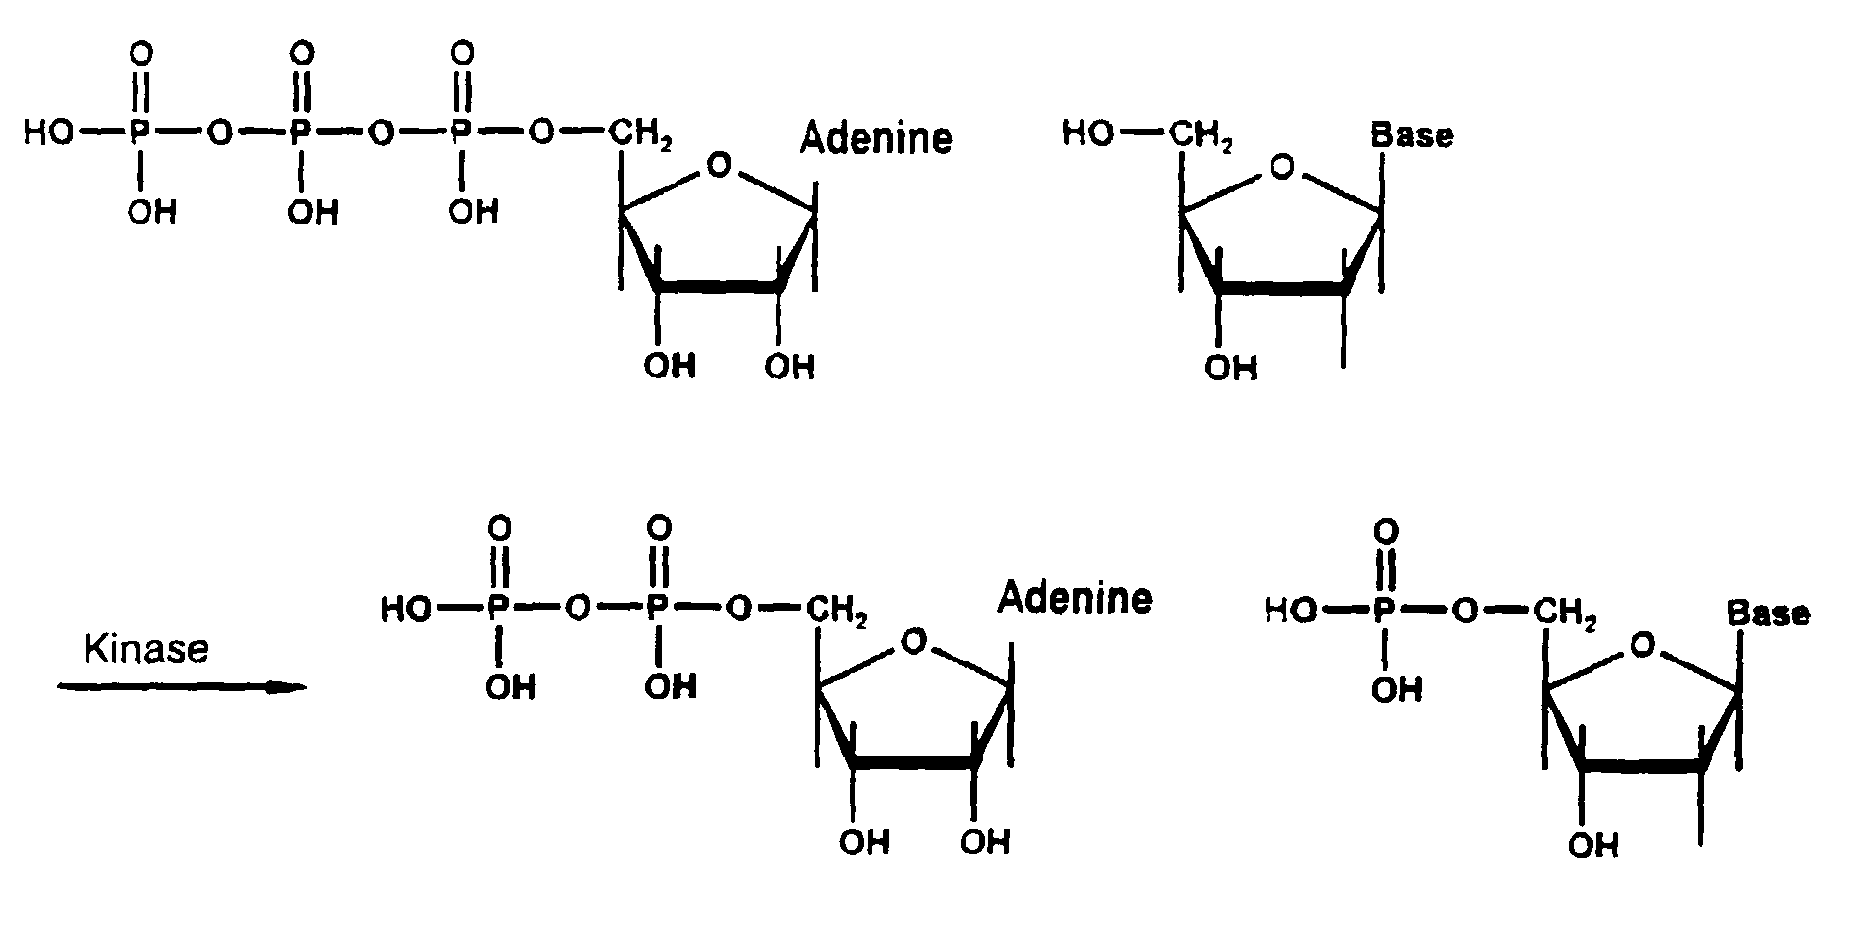 deoxynucleoside -#main